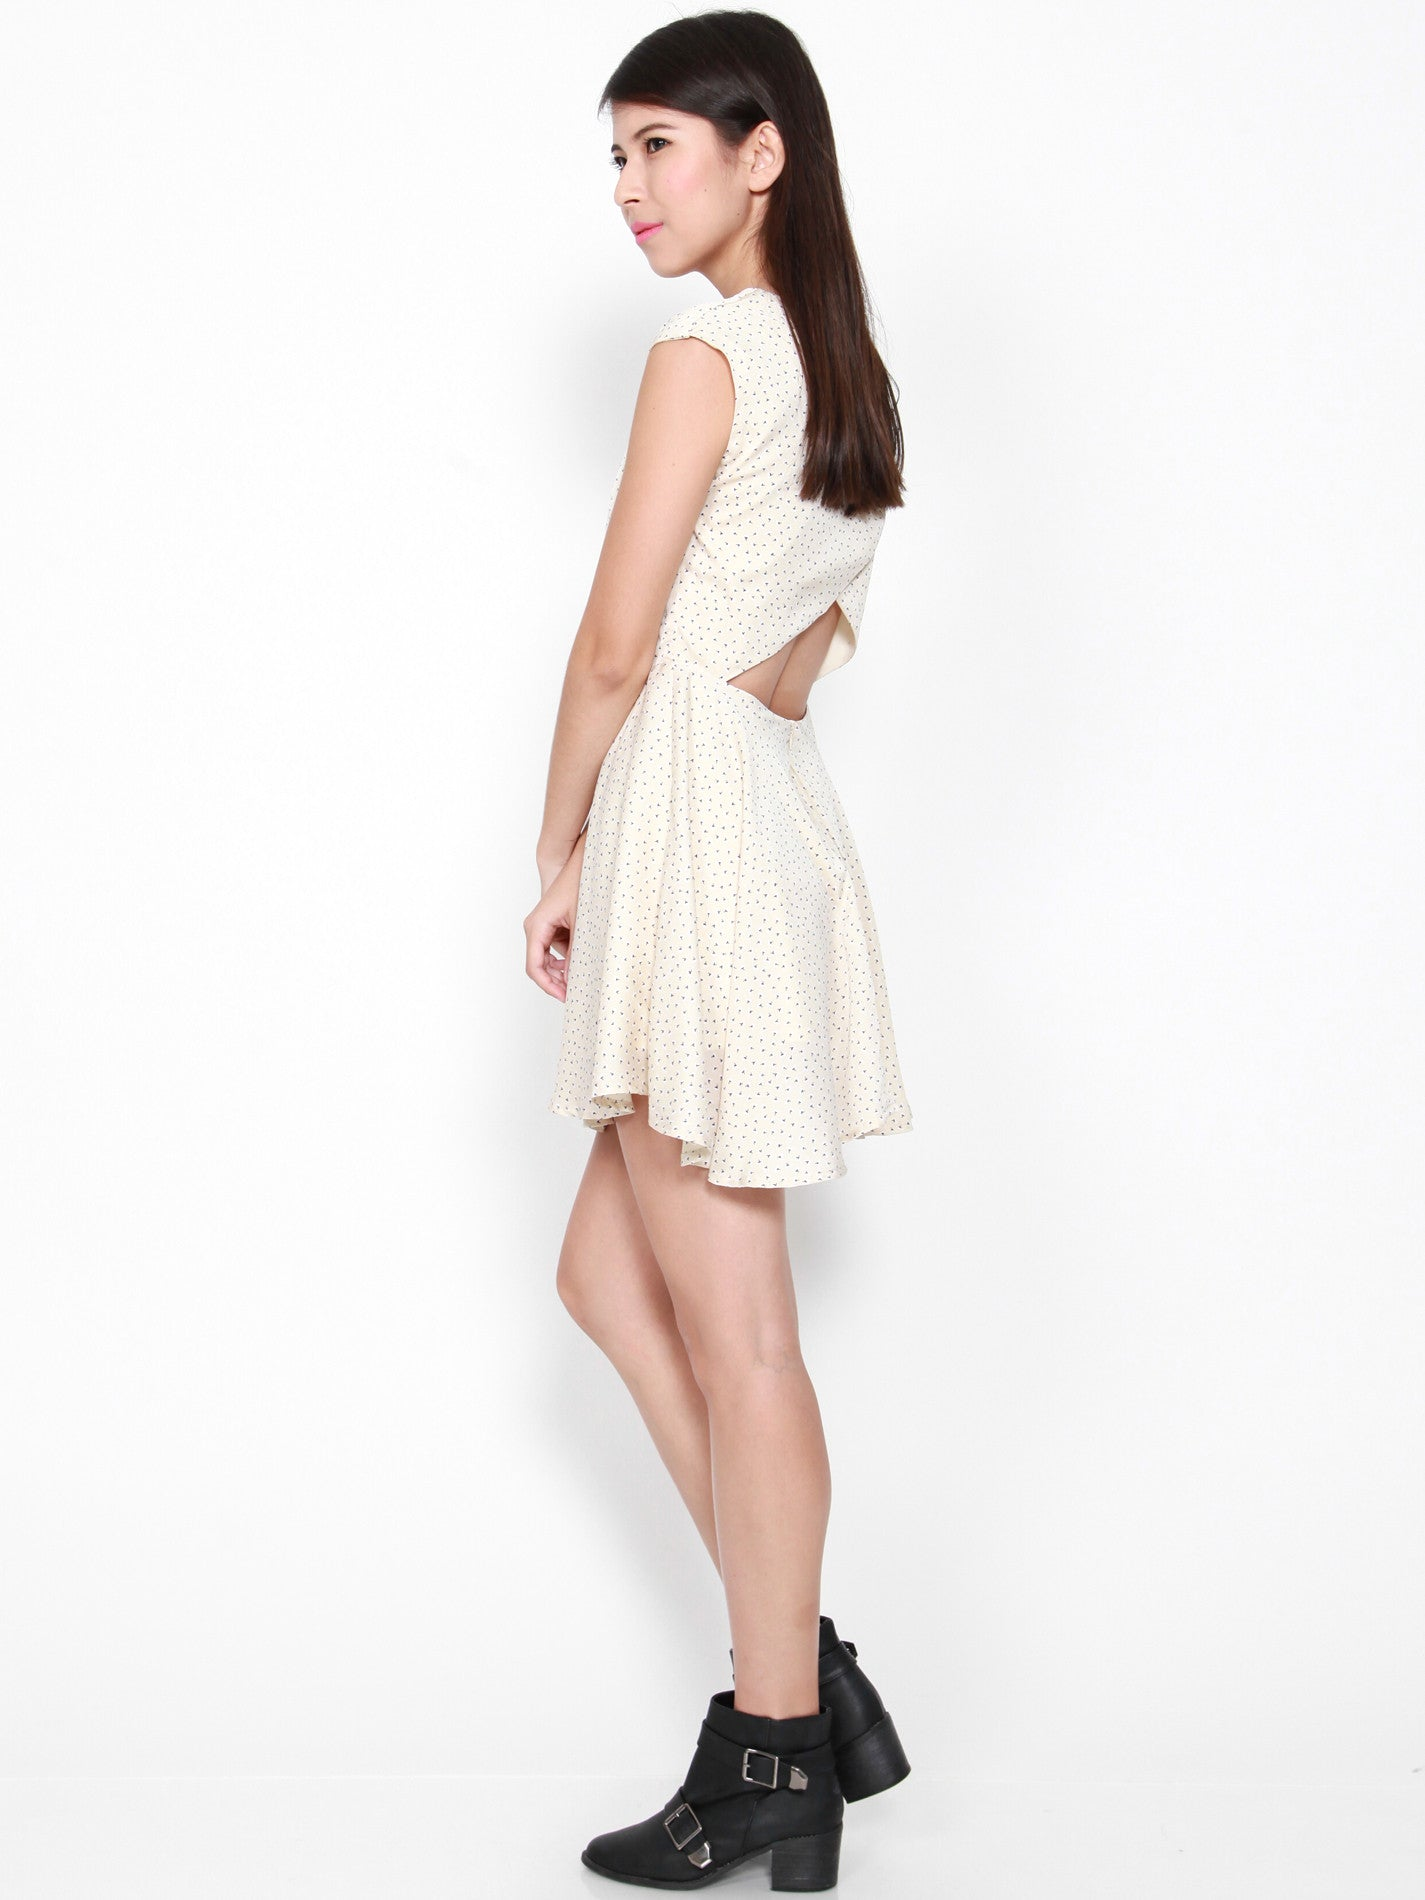 DANICA Layered Back Dress (Dandelion)